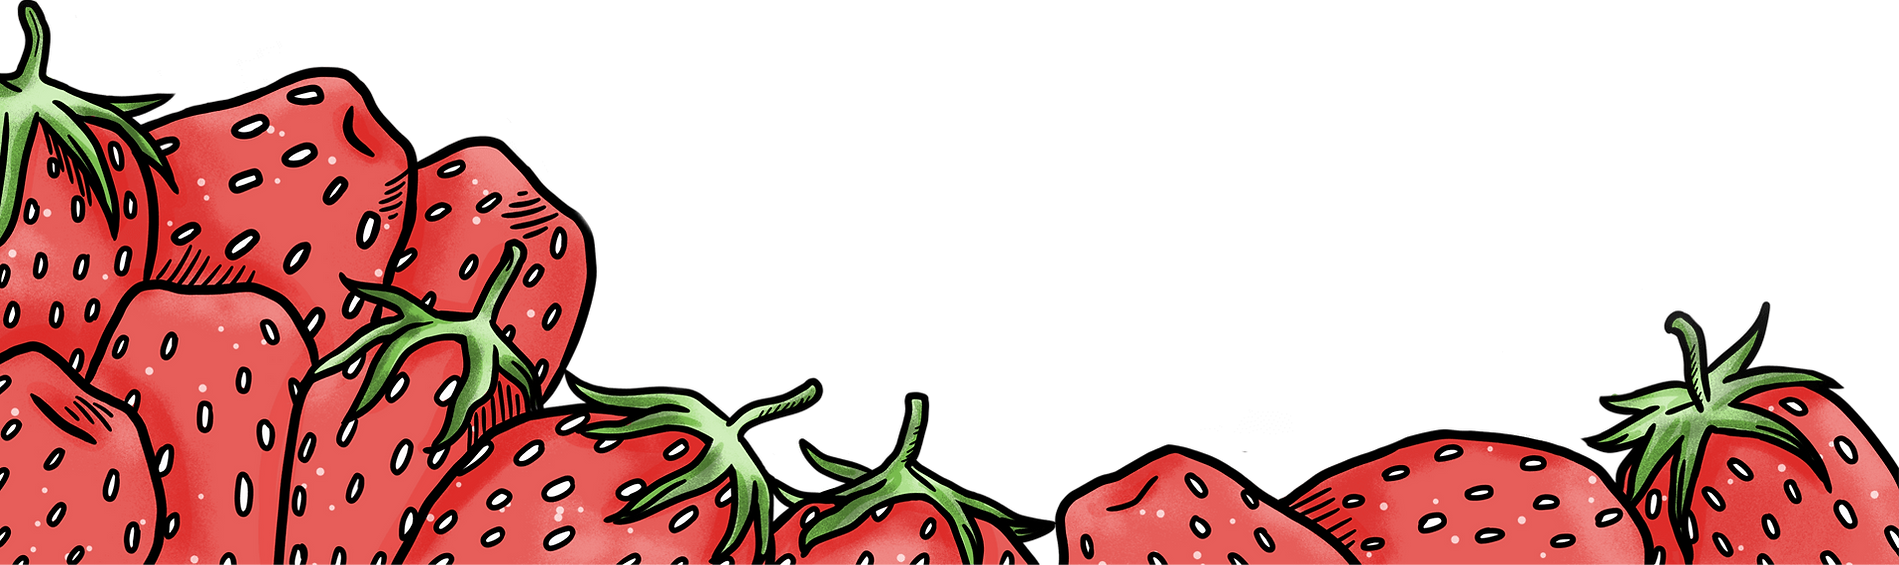 footer-strawberries.png